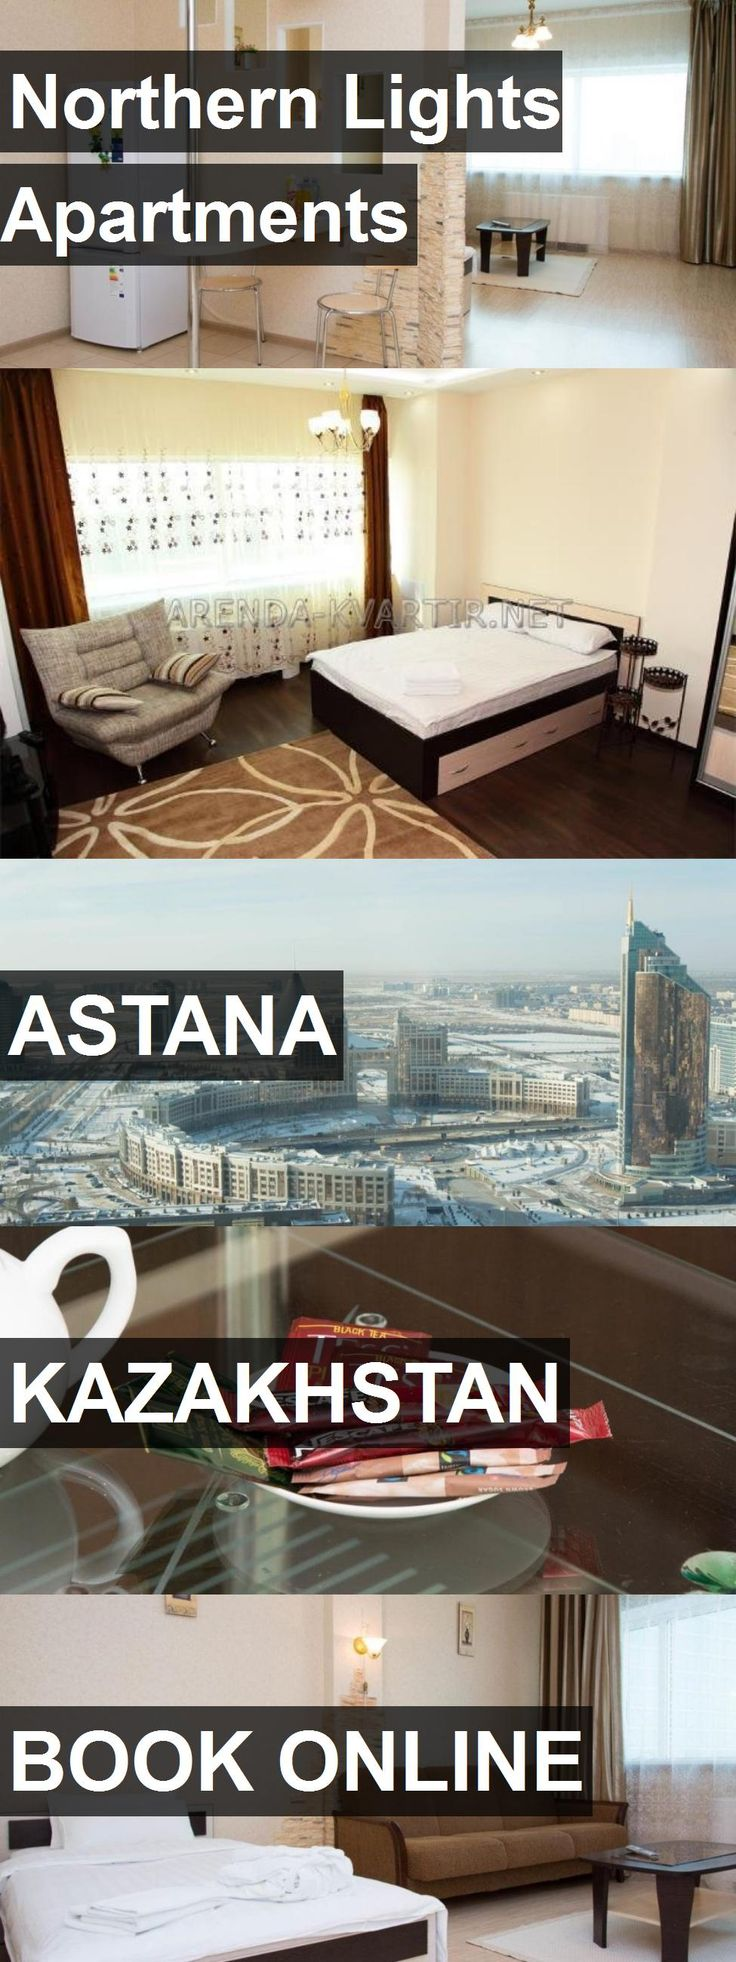 Northern Lights Apartments in Astana, Kazakhstan. For more information, photos, reviews and best prices please follow the link. #Kazakhstan #Astana #travel #vacation #apartment